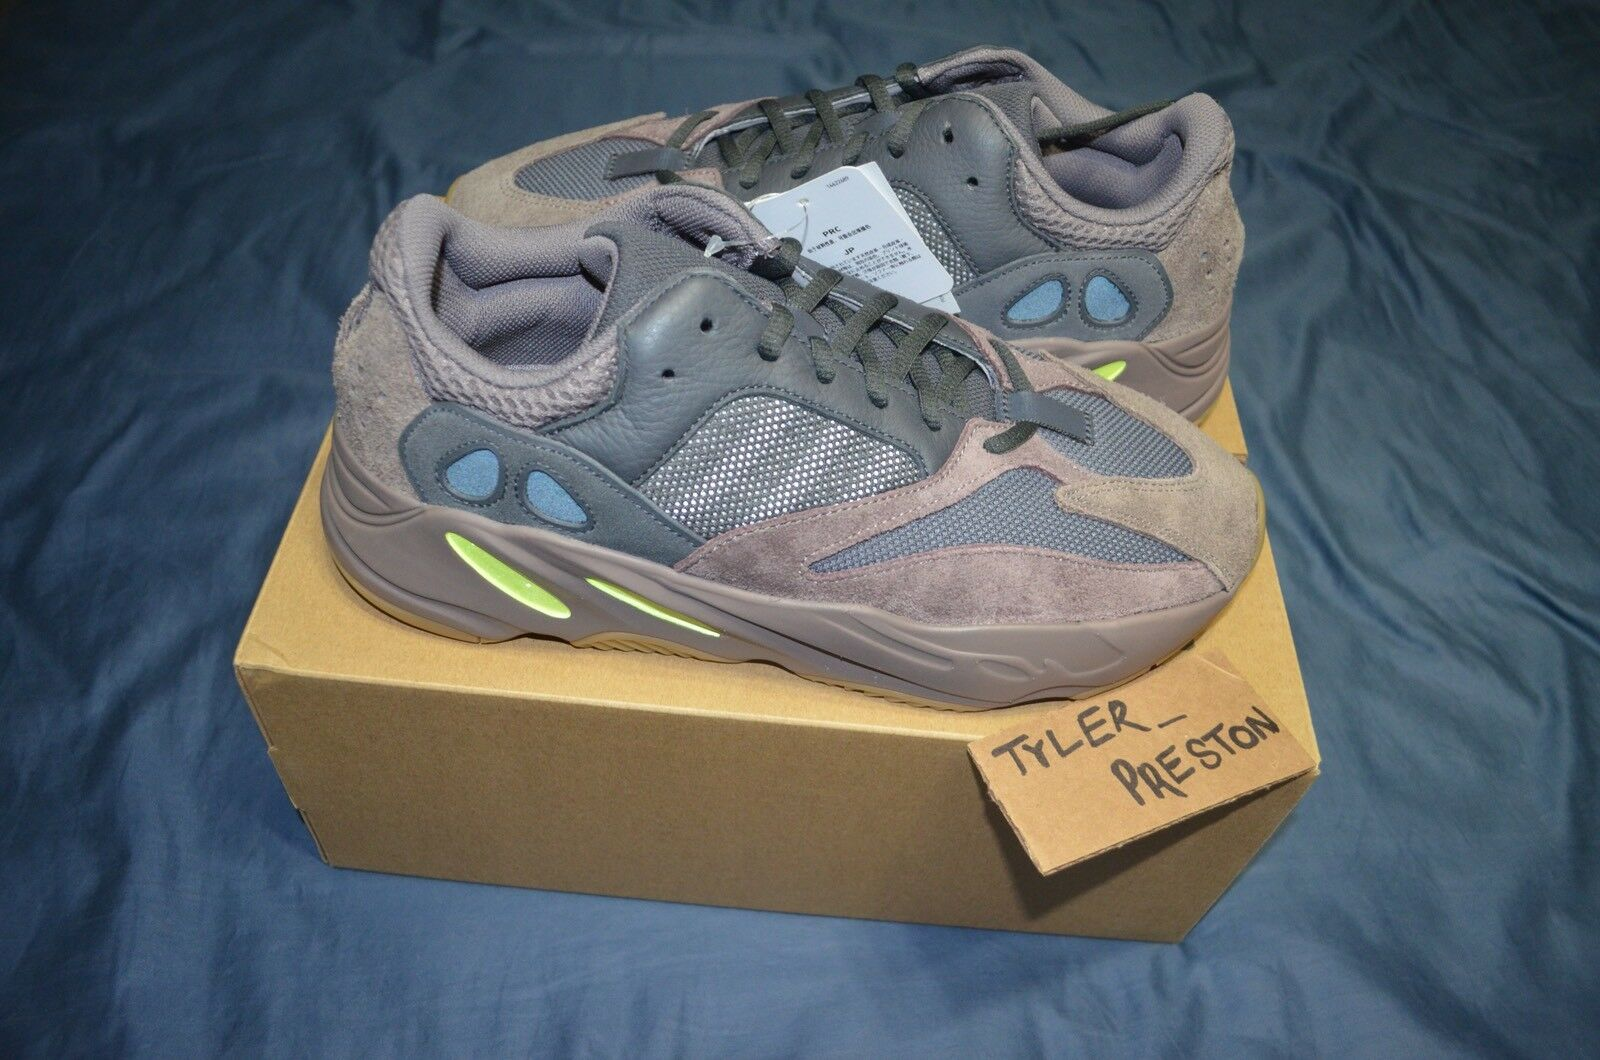 Adidas Yeezy Mauve 700 Boost 10 fw ss Cat Steiff RC TNF CDG Box 97 Scale S 350